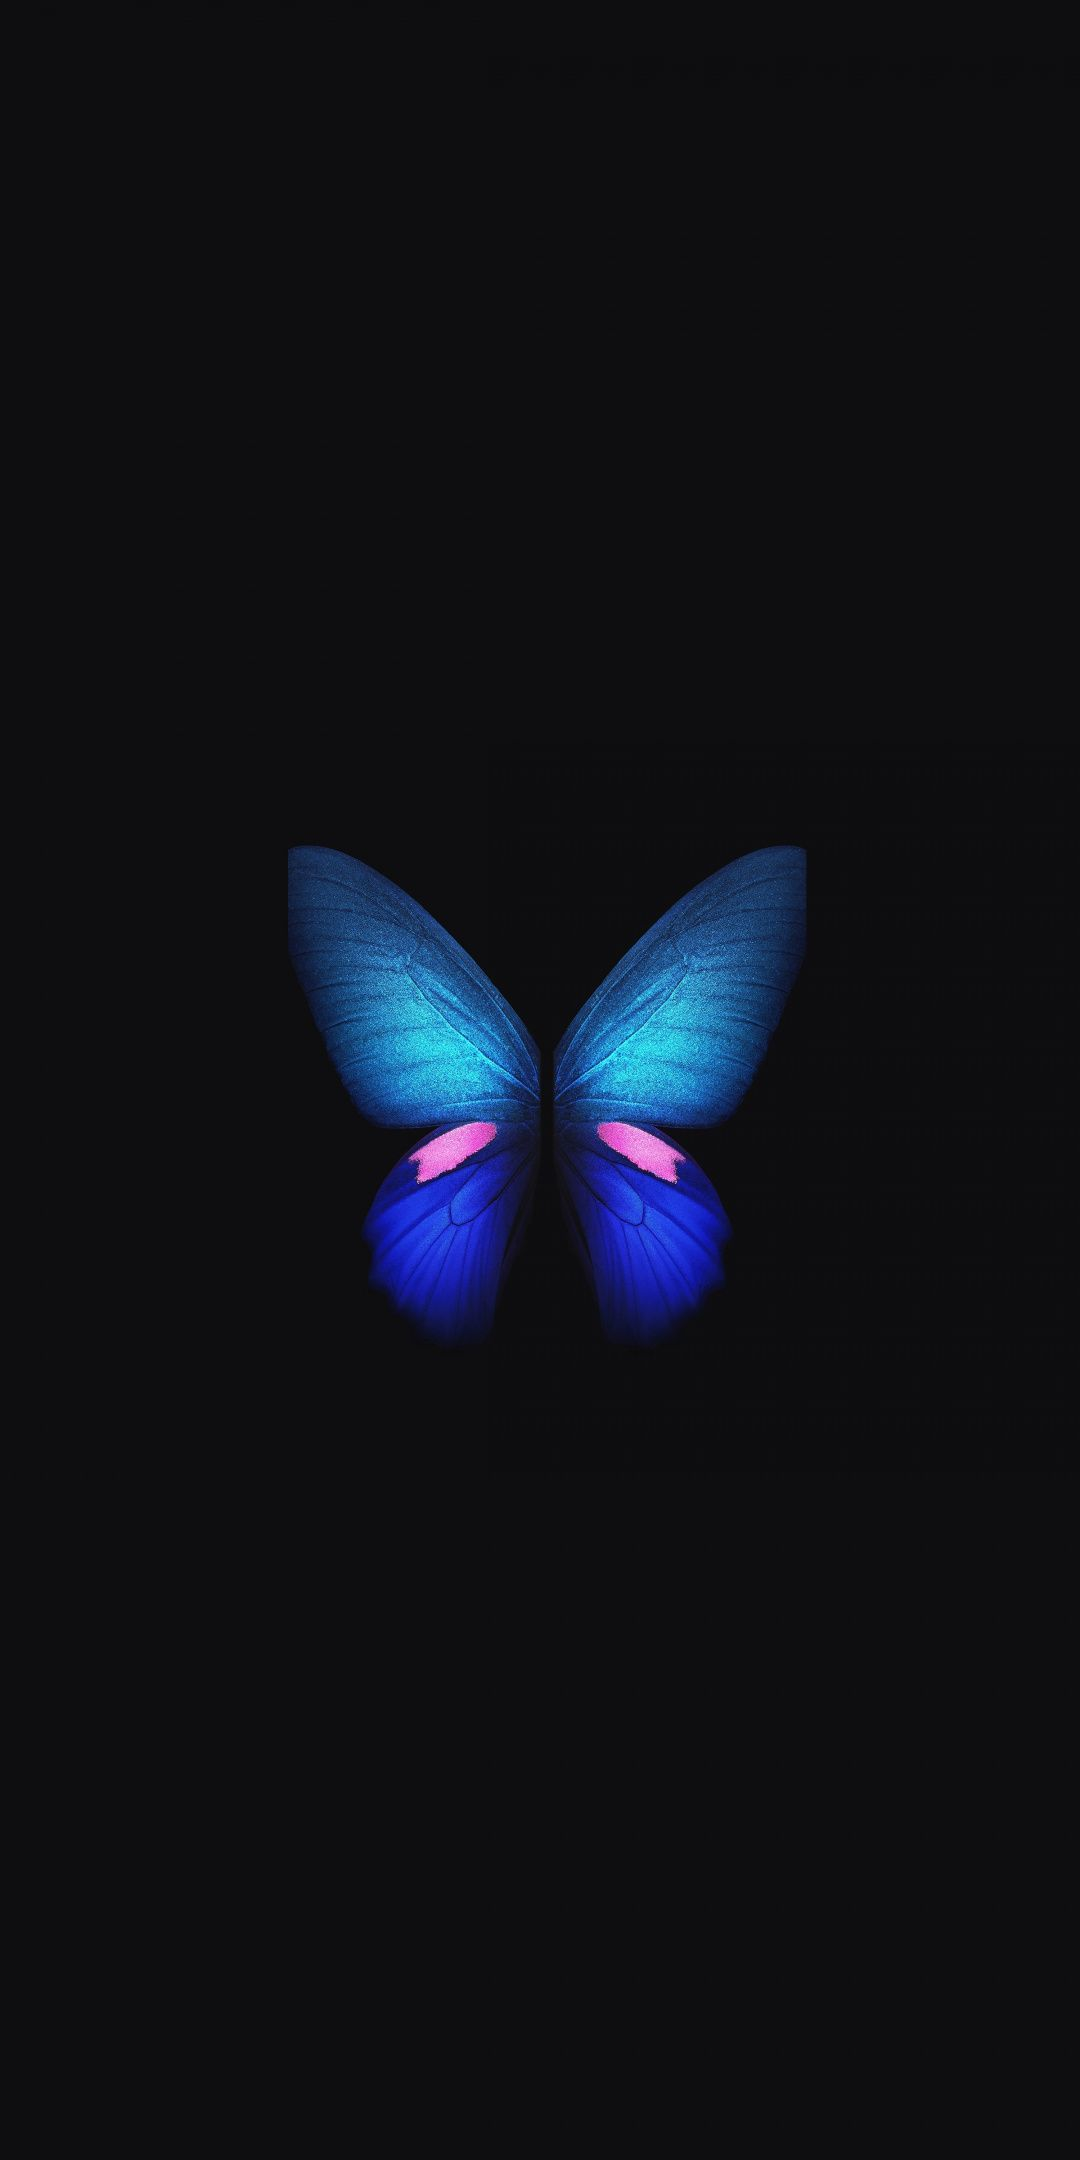 Samsung Galaxy Fold Blue Butterfly Minimal Art 1080x2160 Wallpaper Butterfly Wallpaper Iphone Blue Galaxy Wallpaper Blue Butterfly Wallpaper